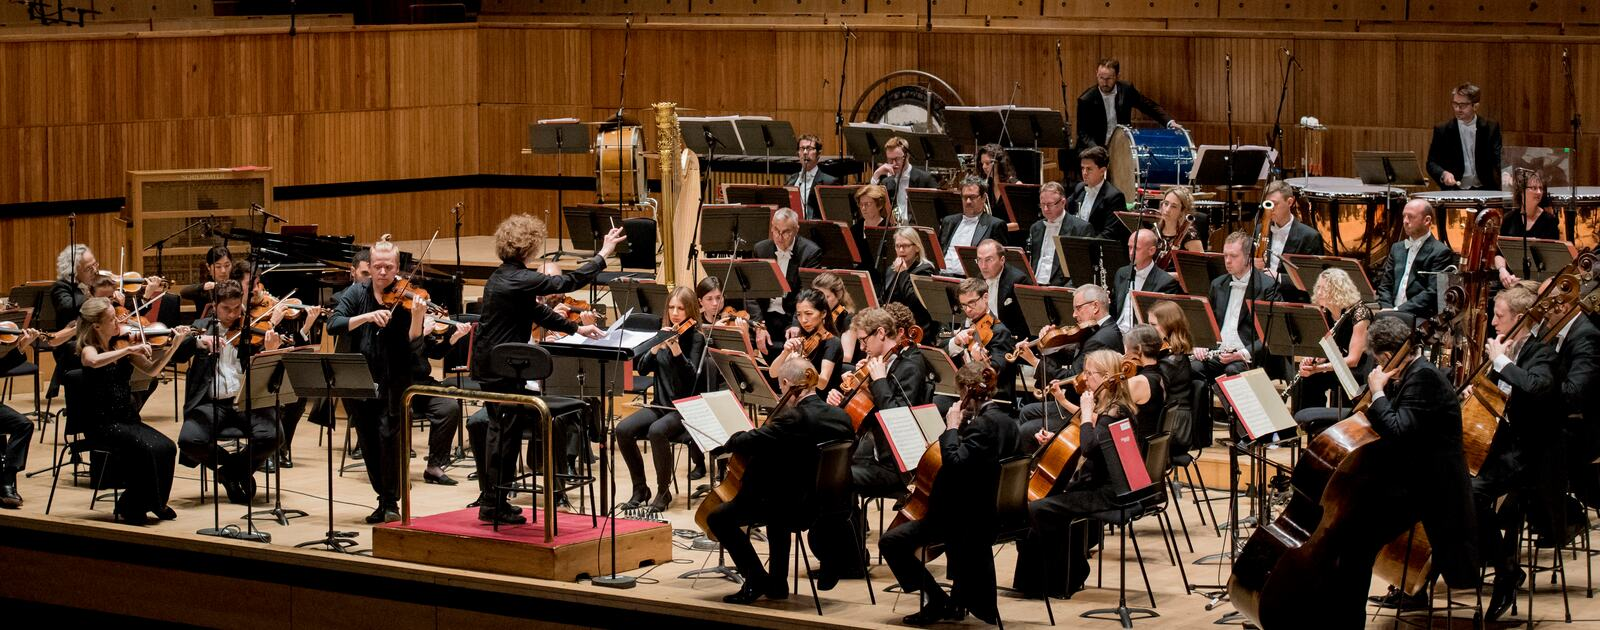 Sunday Matinee concert in Royal Festival Hall